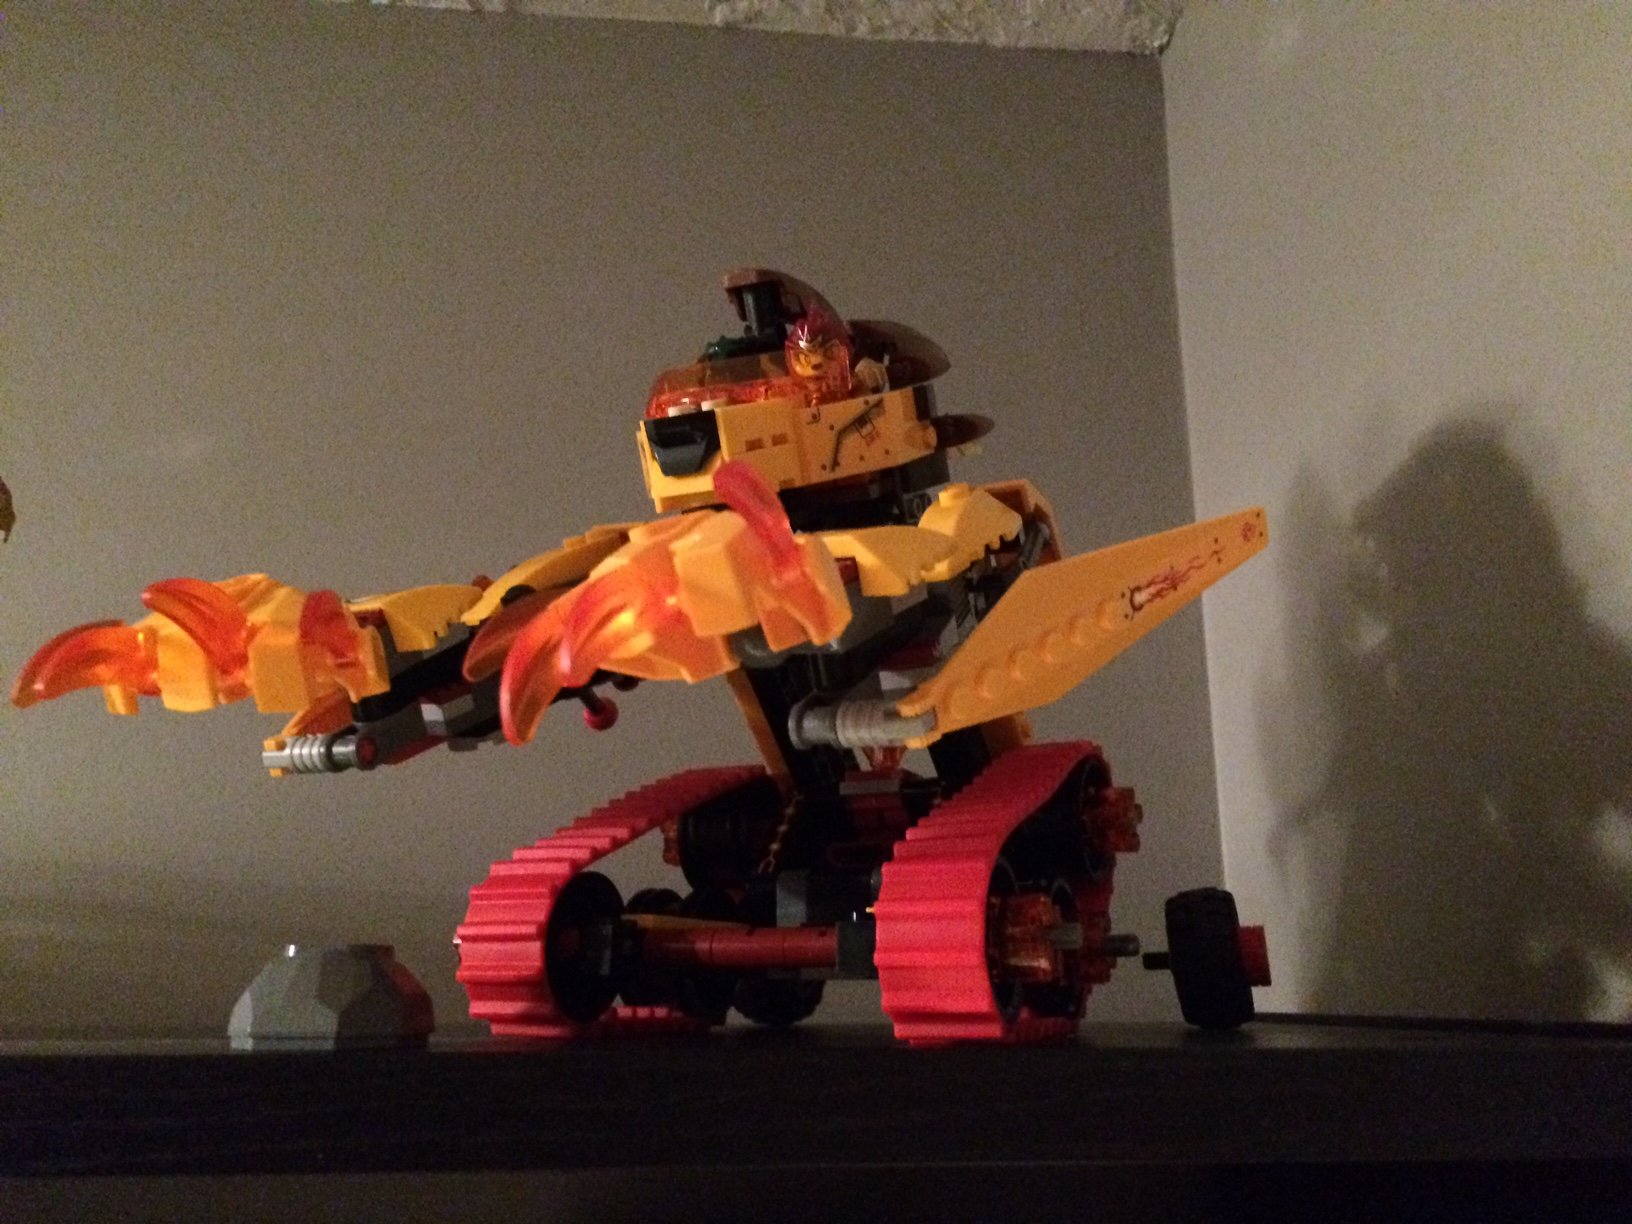 LEGO Chima Fire Lion